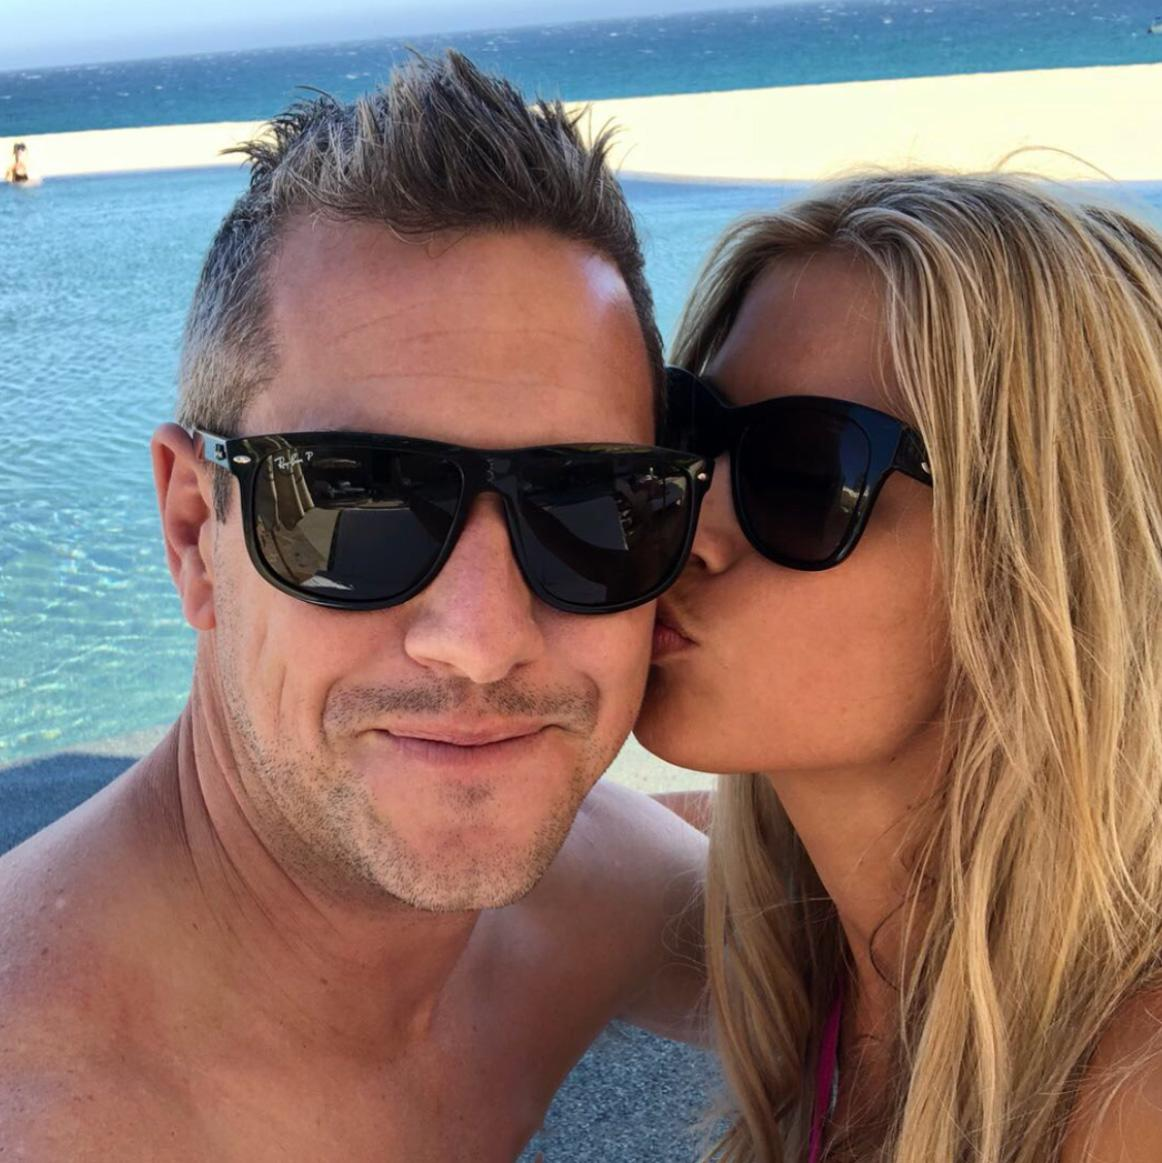 Christina El Moussa is happily dating boyfriend Ant Anstead but some people have been critical of their relationship When a troll on social media